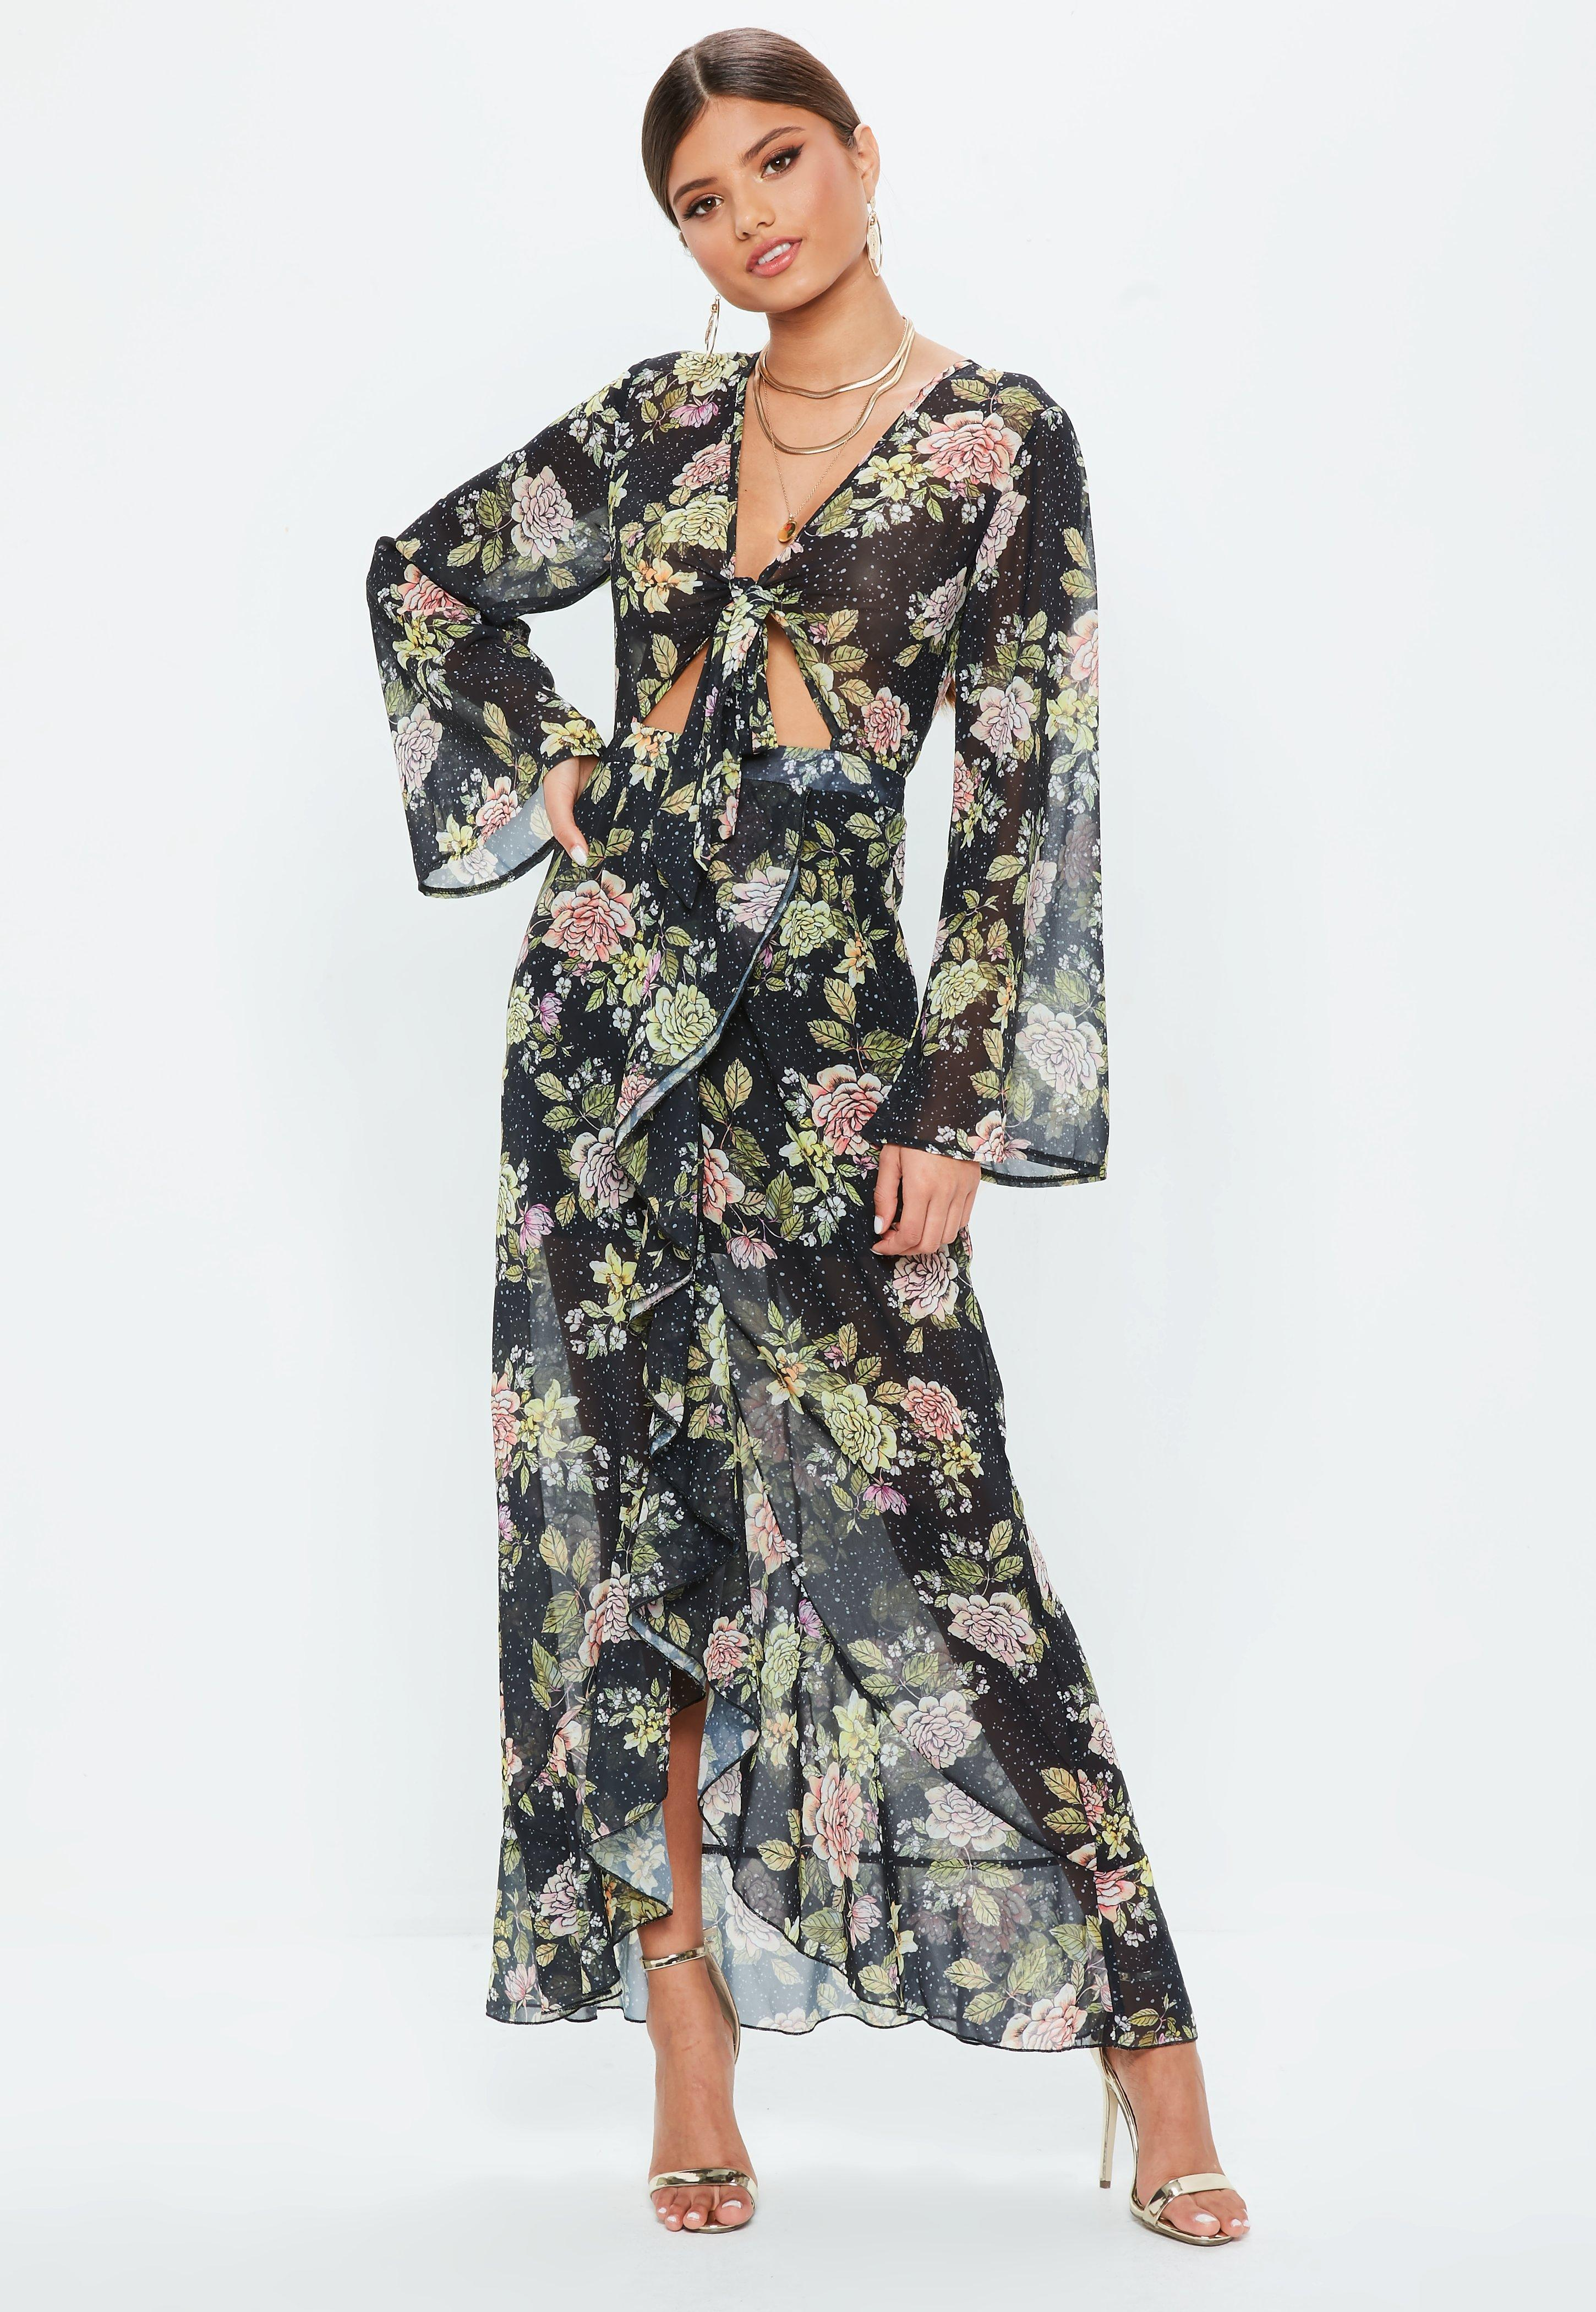 95cddc90e90f Lyst - Missguided Black Floral Tie Front Maxi Dress in Black